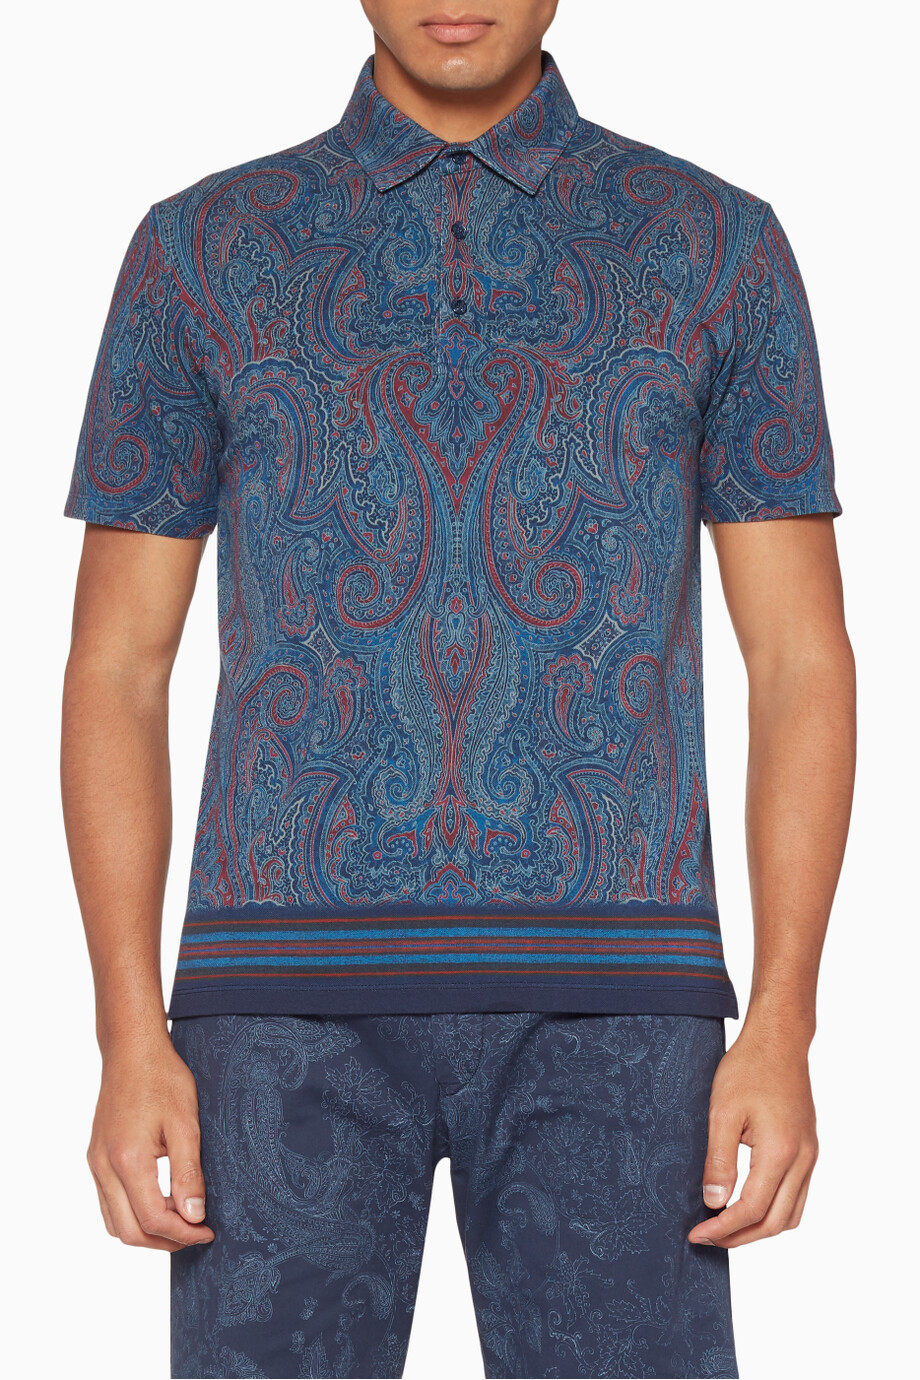 5e9ac21abc110 Shop Etro Blue Navy Paisley Print Polo Shirt for Men | Ounass Saudi